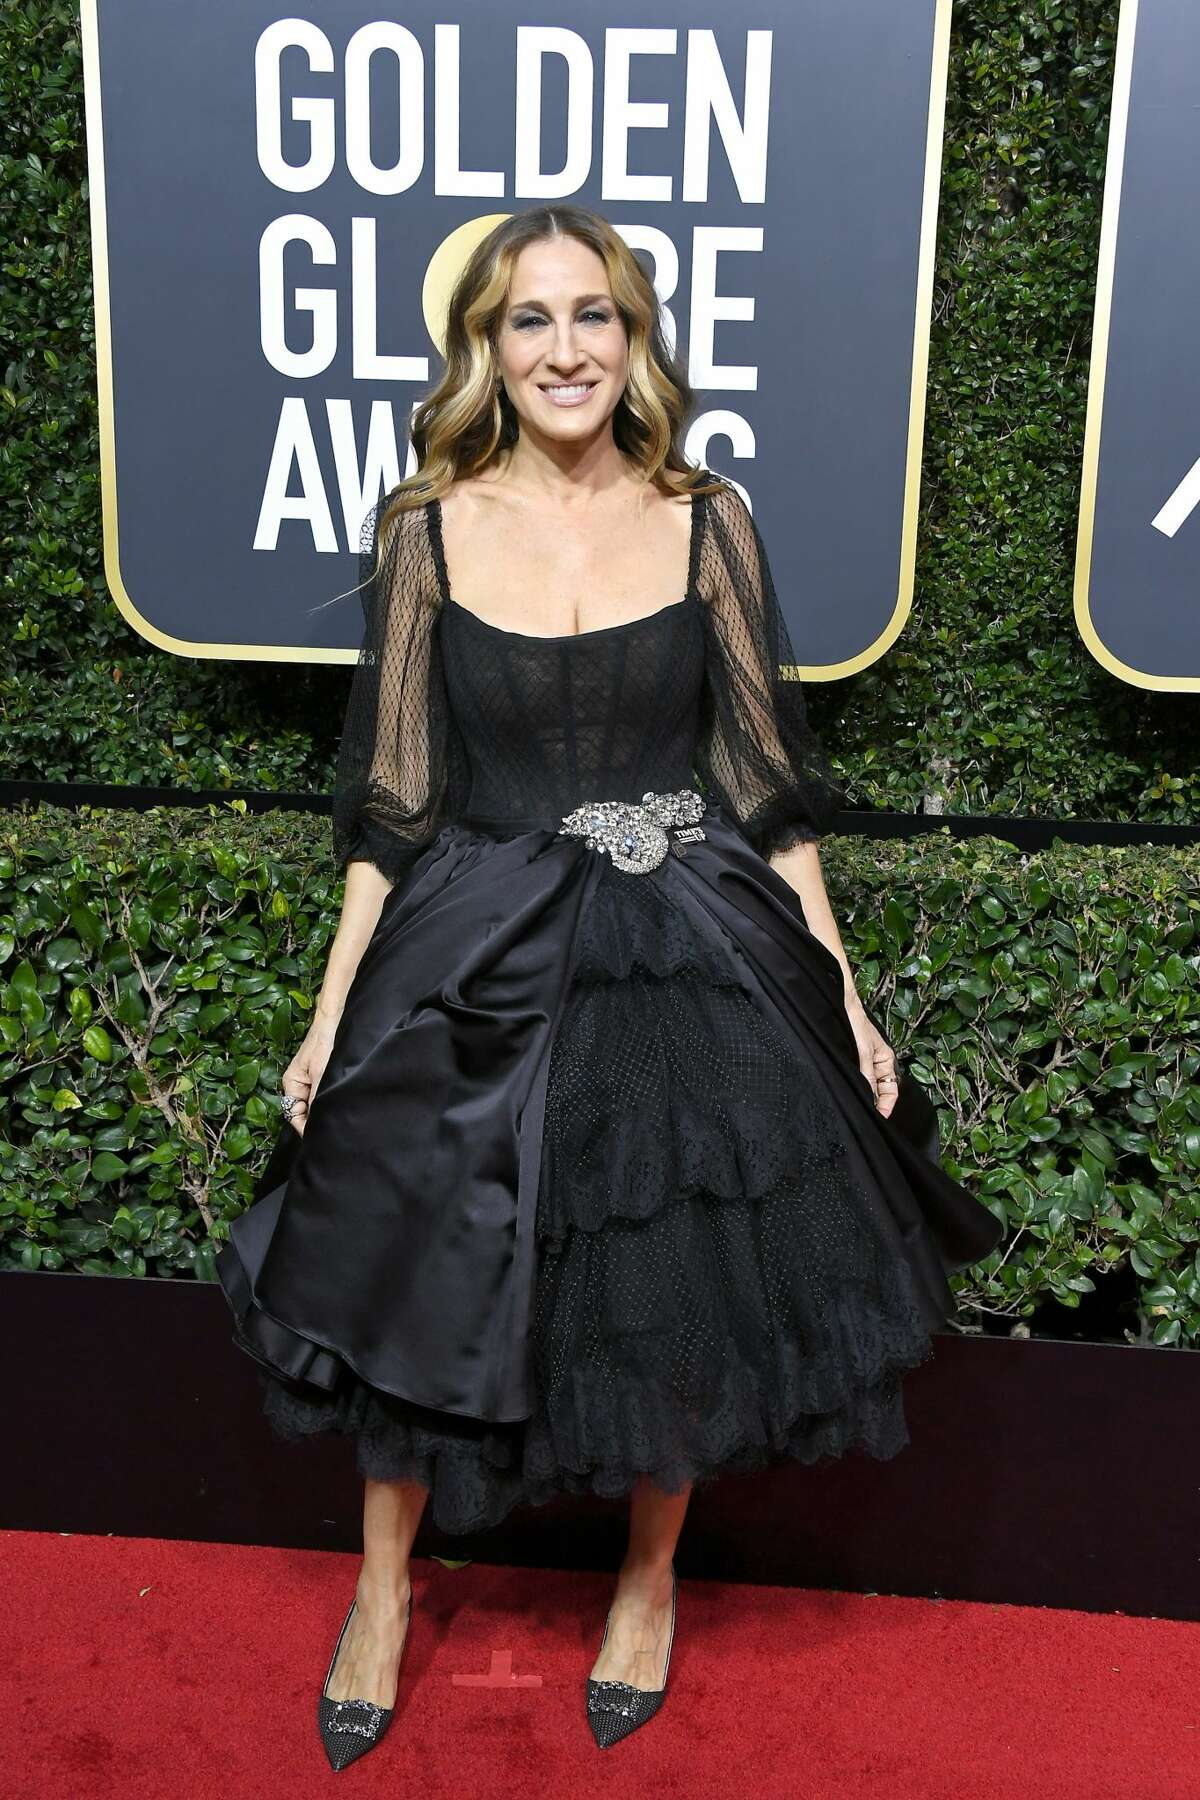 Sarah Jessica Parker attends The 75th Annual Golden Globe Awards at The Beverly Hilton Hotel on January 7, 2018 in Beverly Hills, California.